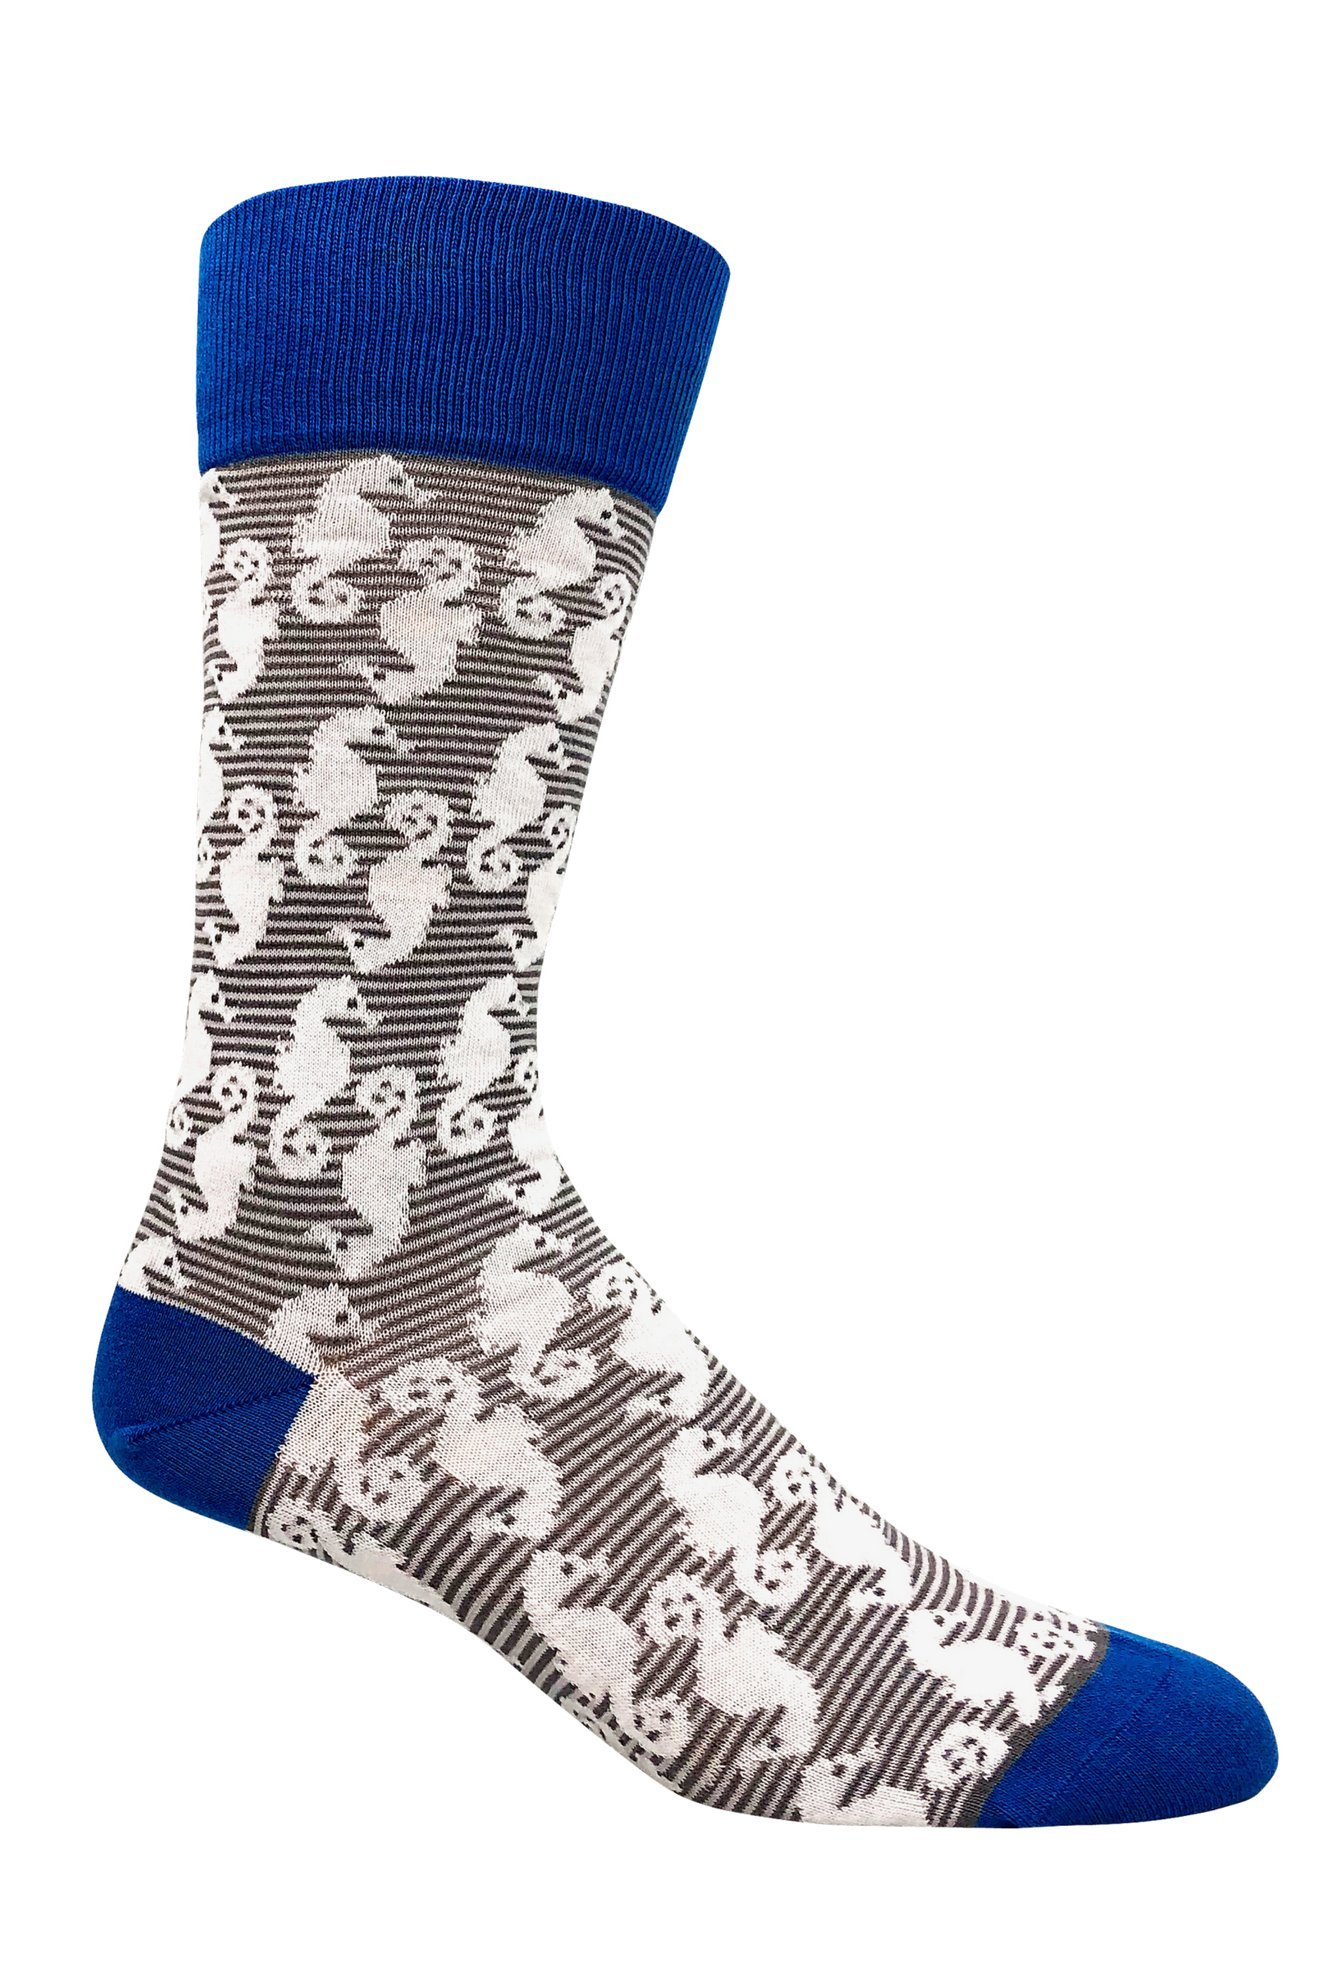 Men's organic cotton patterned mid-calf fun casual socks - Seahorse Grey